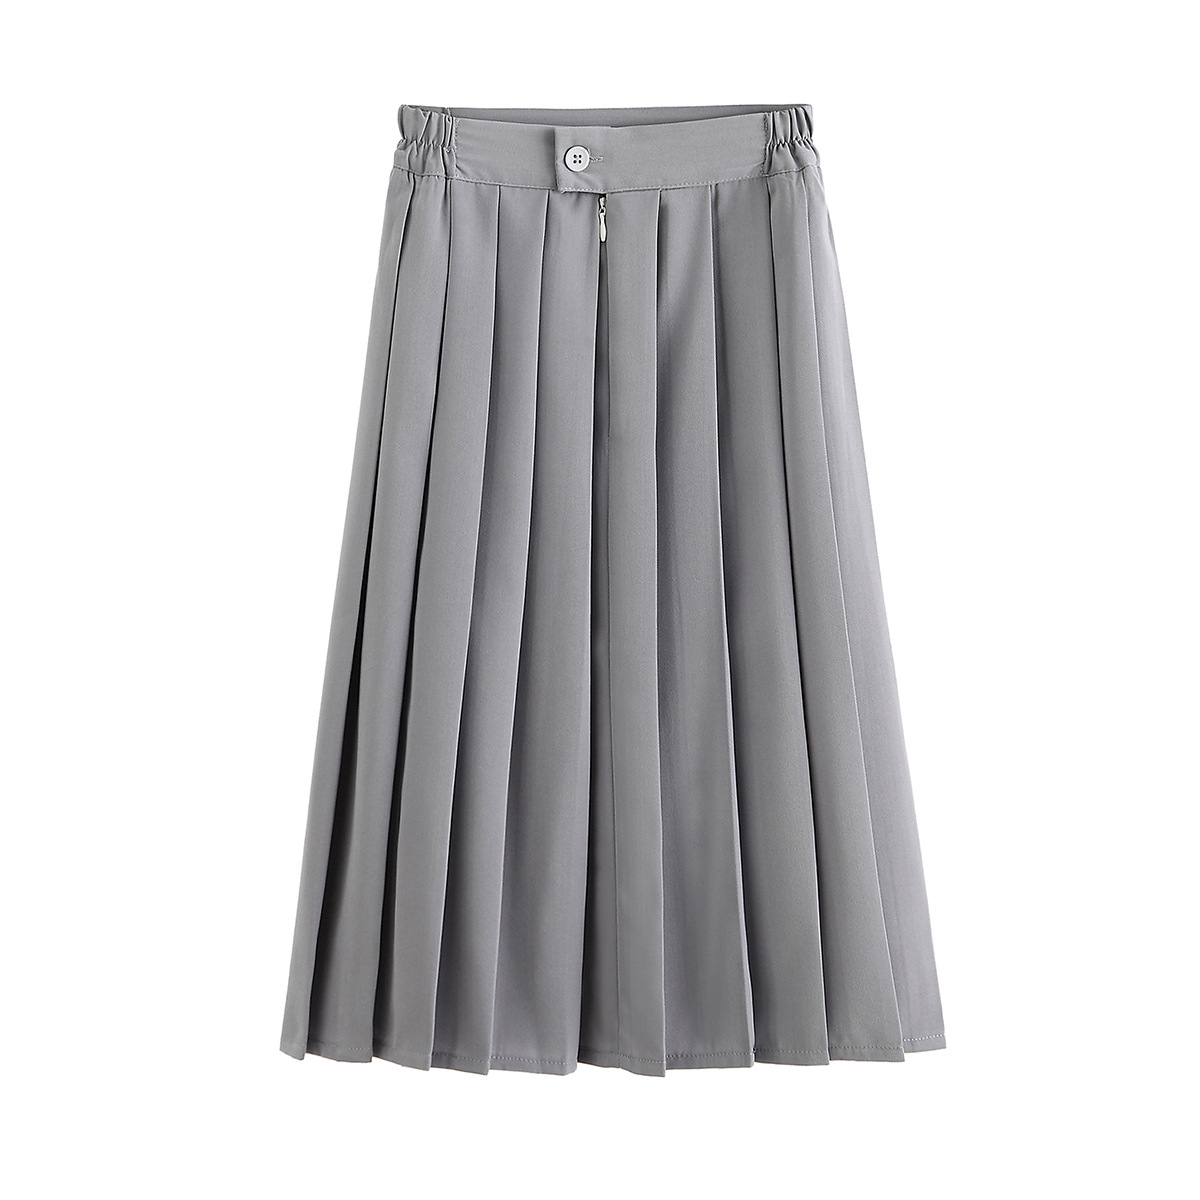 2020 New 5XL High Waist A-Linen Women Pleated Skirt Saia Stretch Waist Plus Size Women Midi Skirt Faldas Jupe Femme